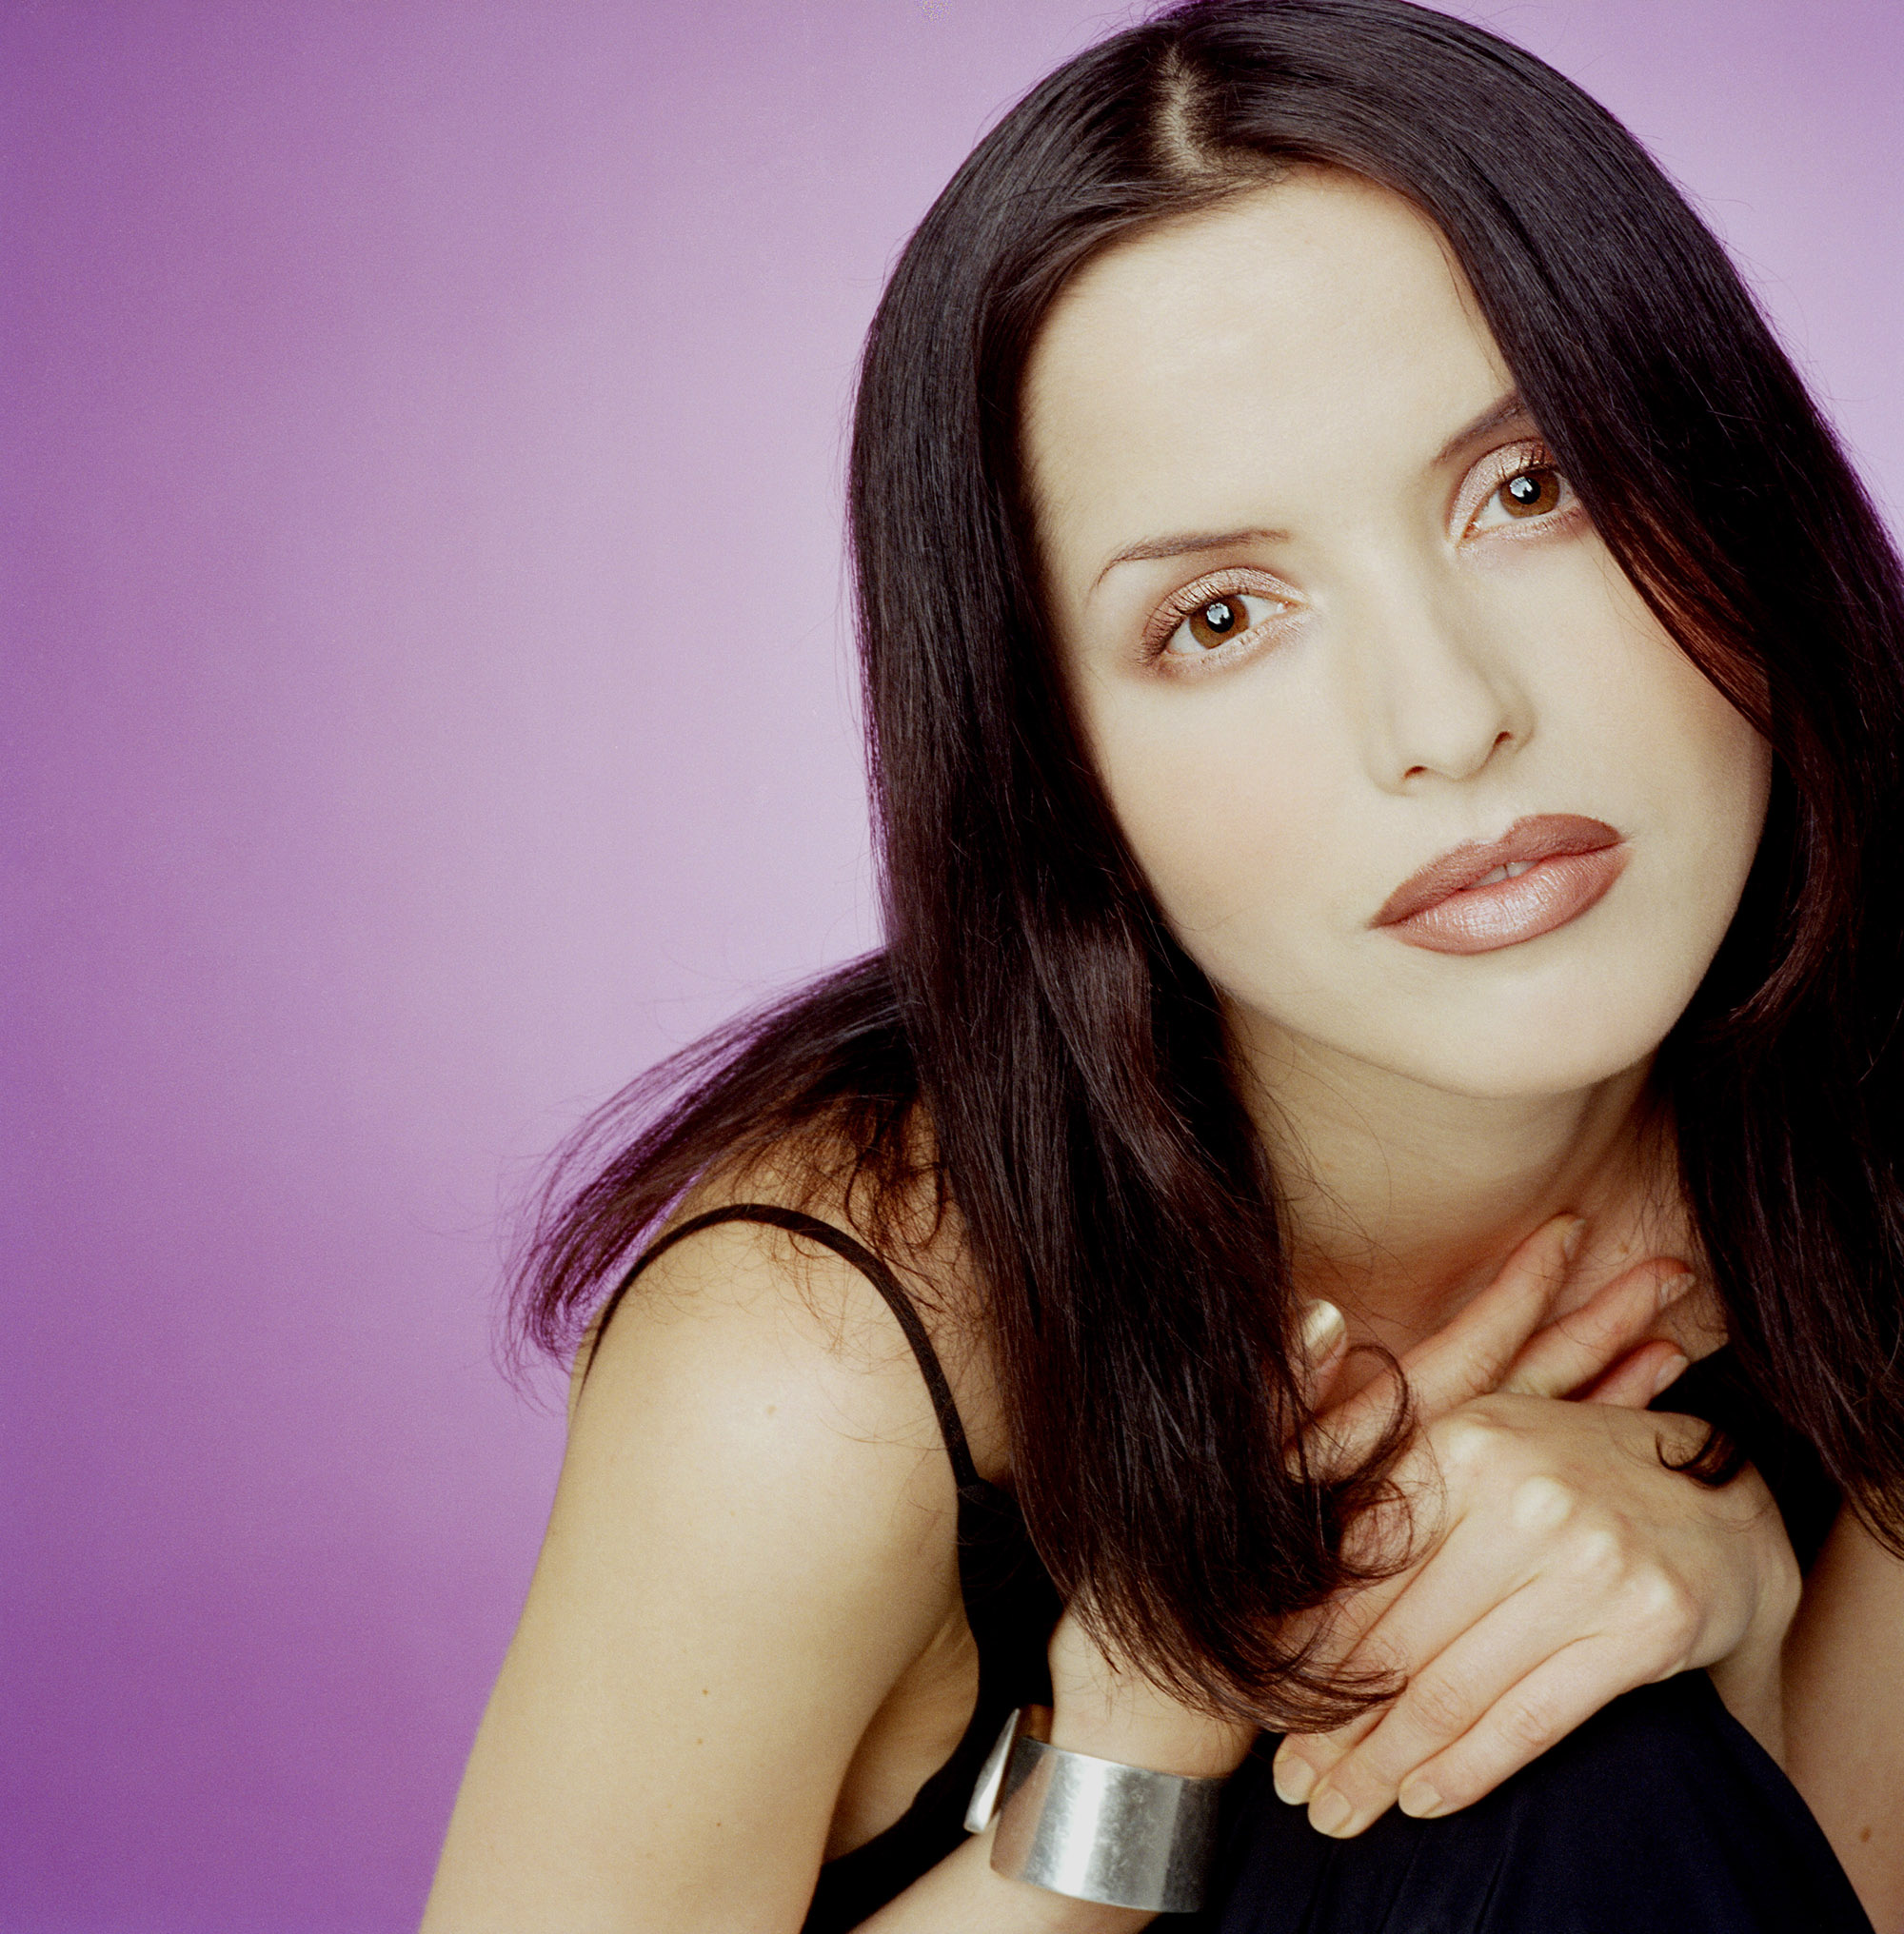 Andrea Corr photo #282137